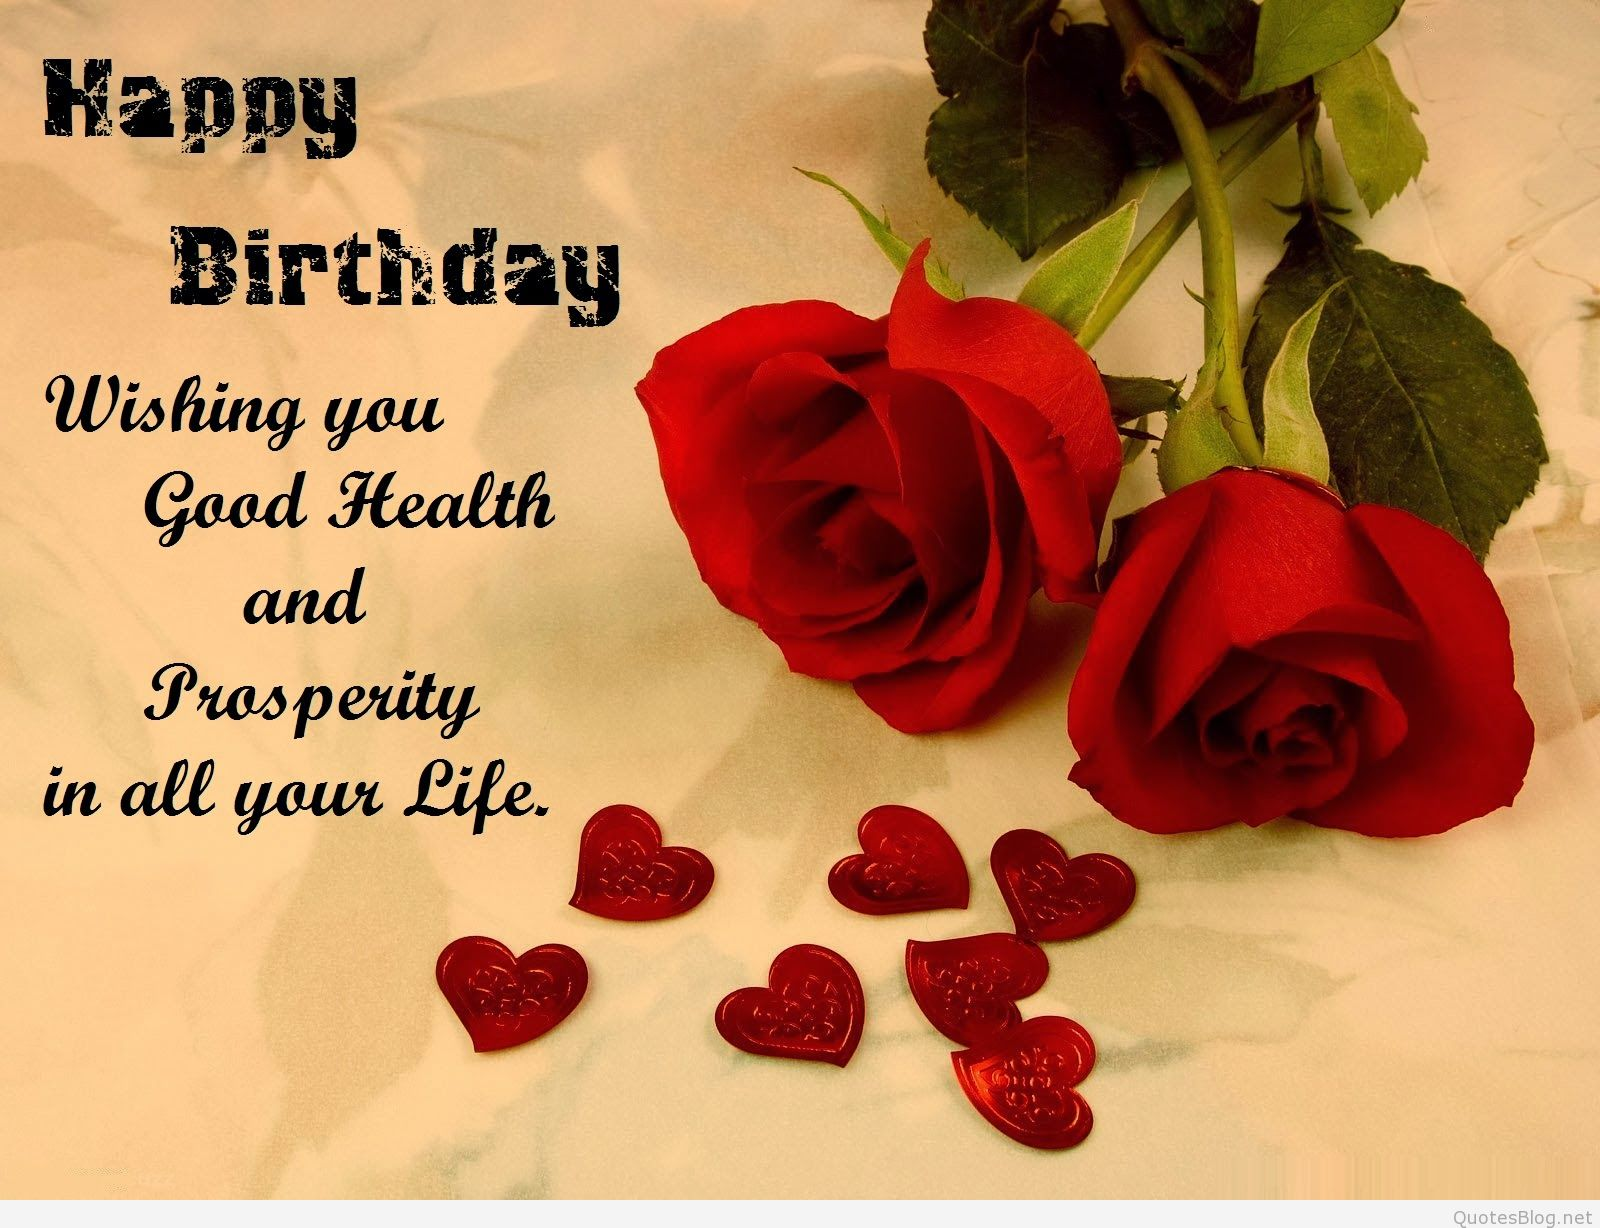 Happy Birthday Wishes & Greetings